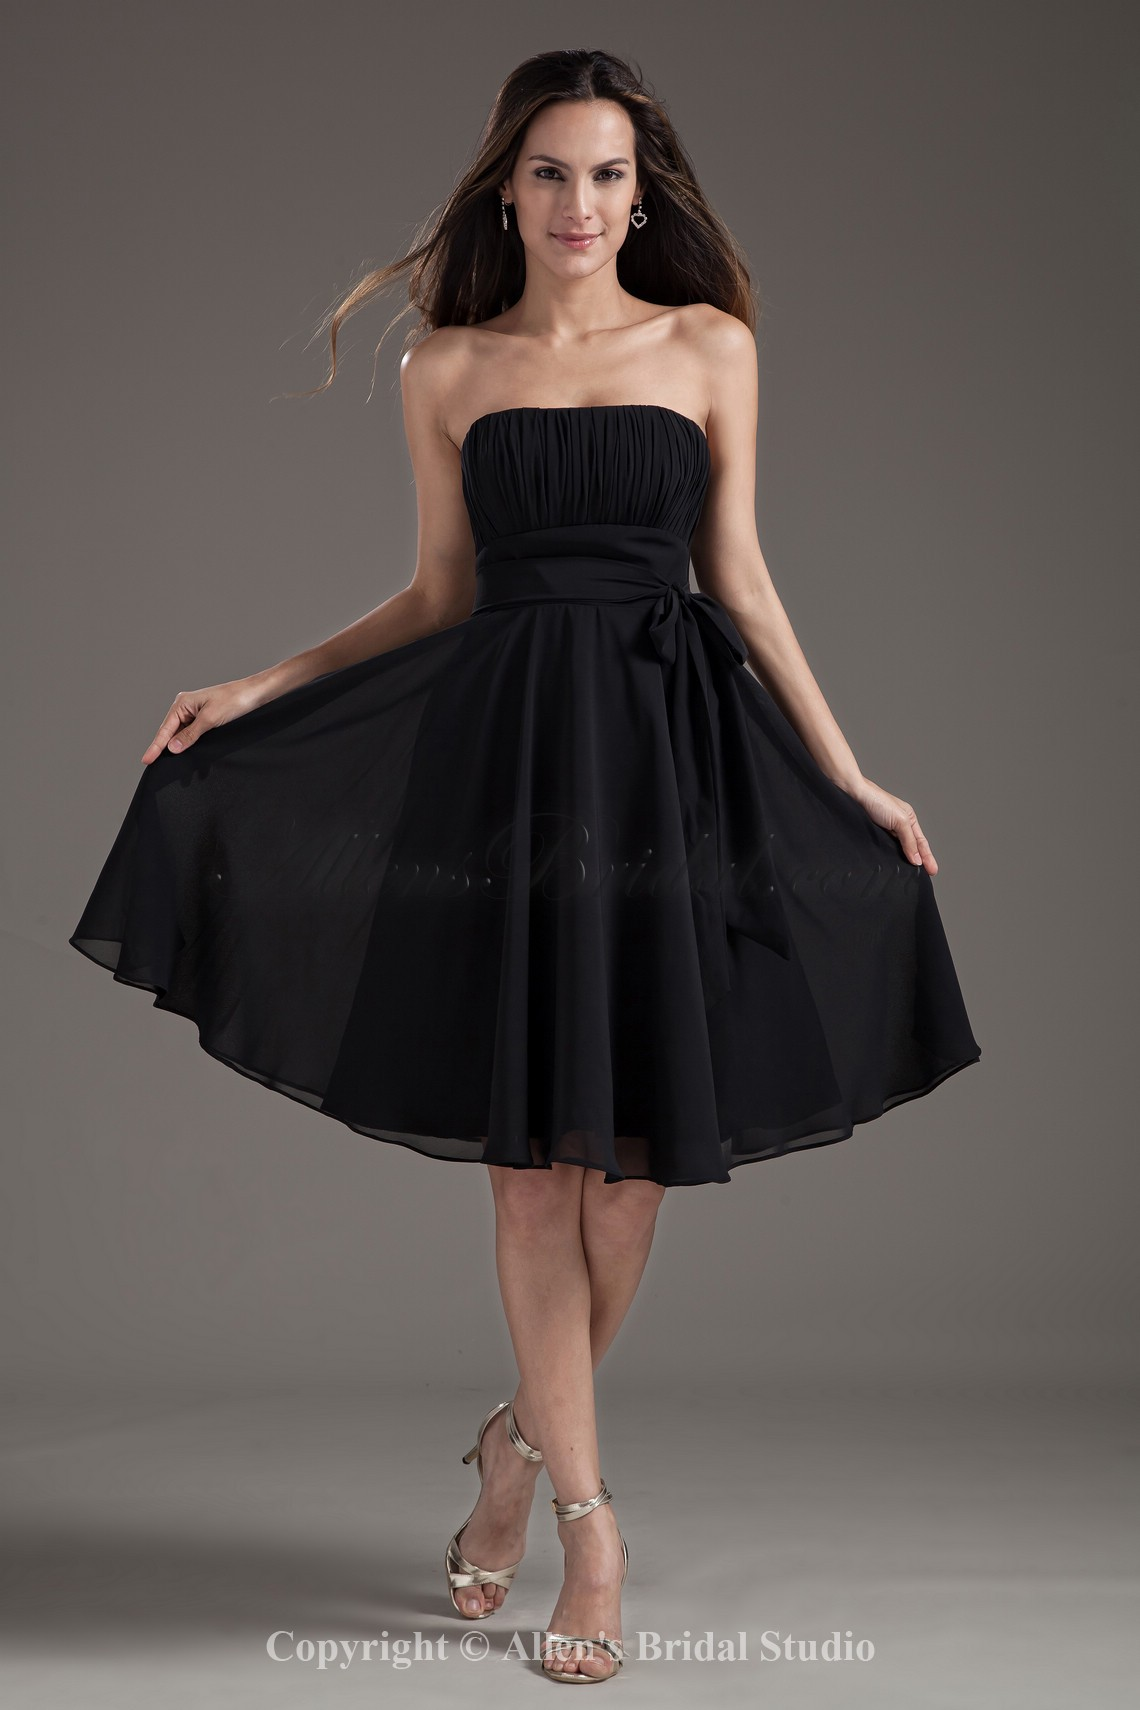 /124-985/chiffon-strapless-a-line-black-knee-length-sash-cocktail-dress.jpg